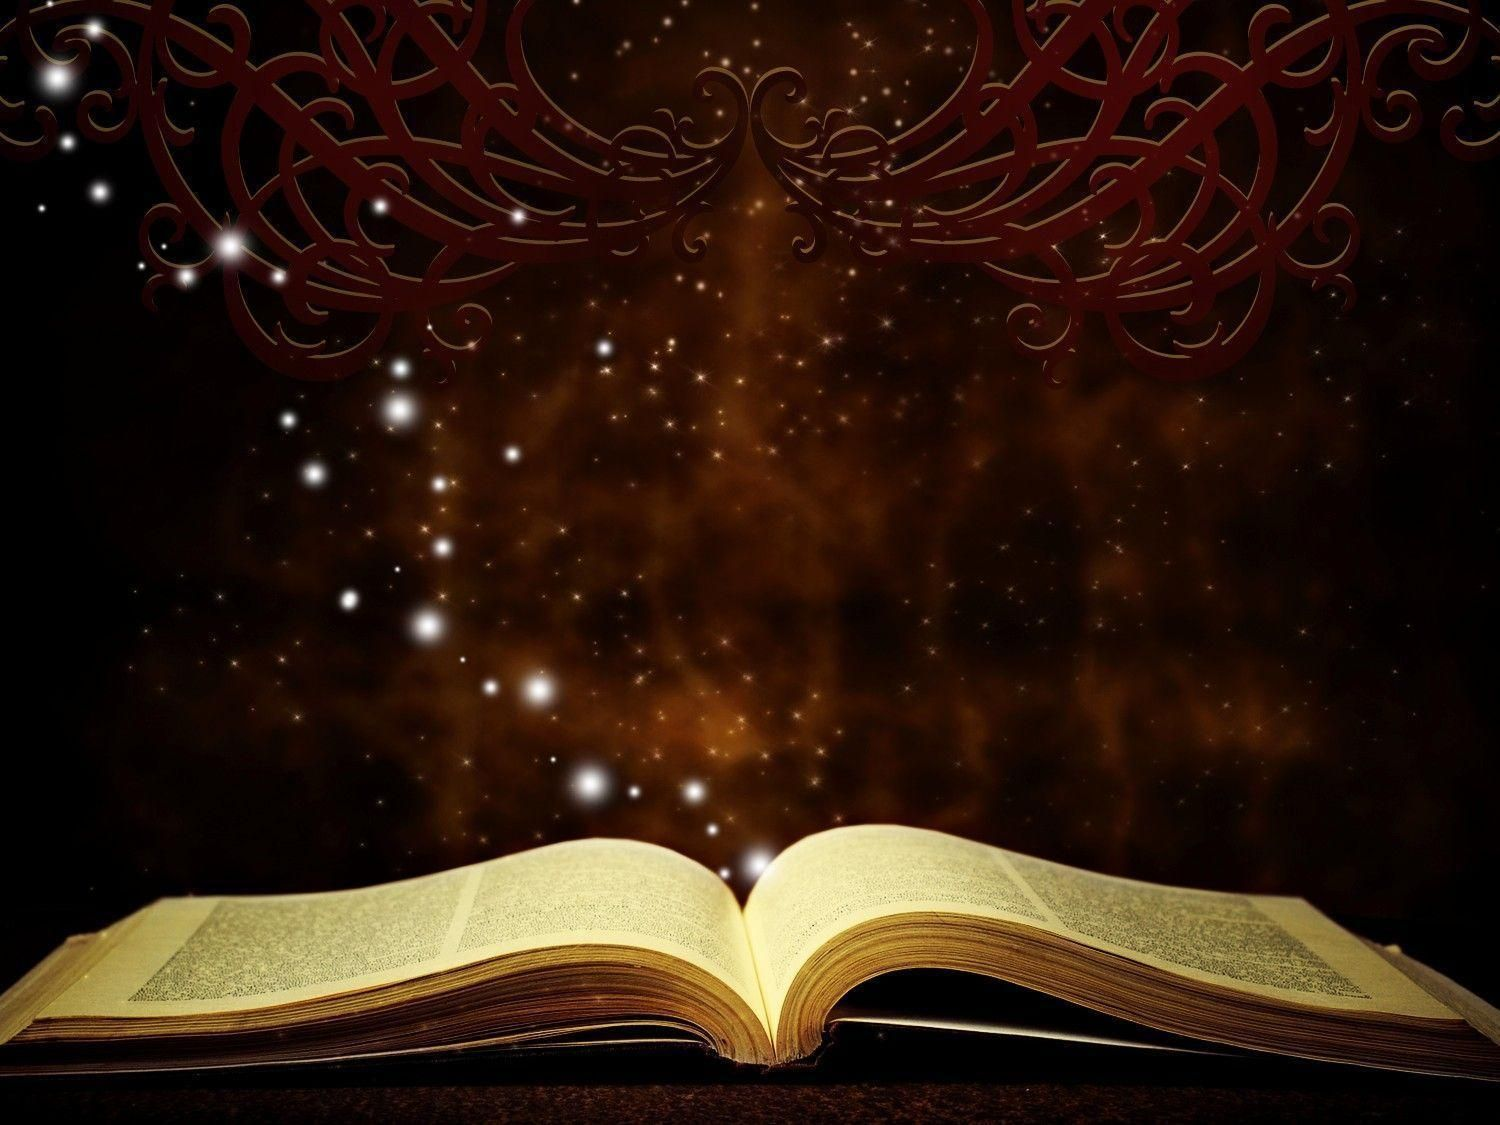 Holy Bible Wallpapers Wallpaper Cave Worship Backgrounds Bible Holy Bible